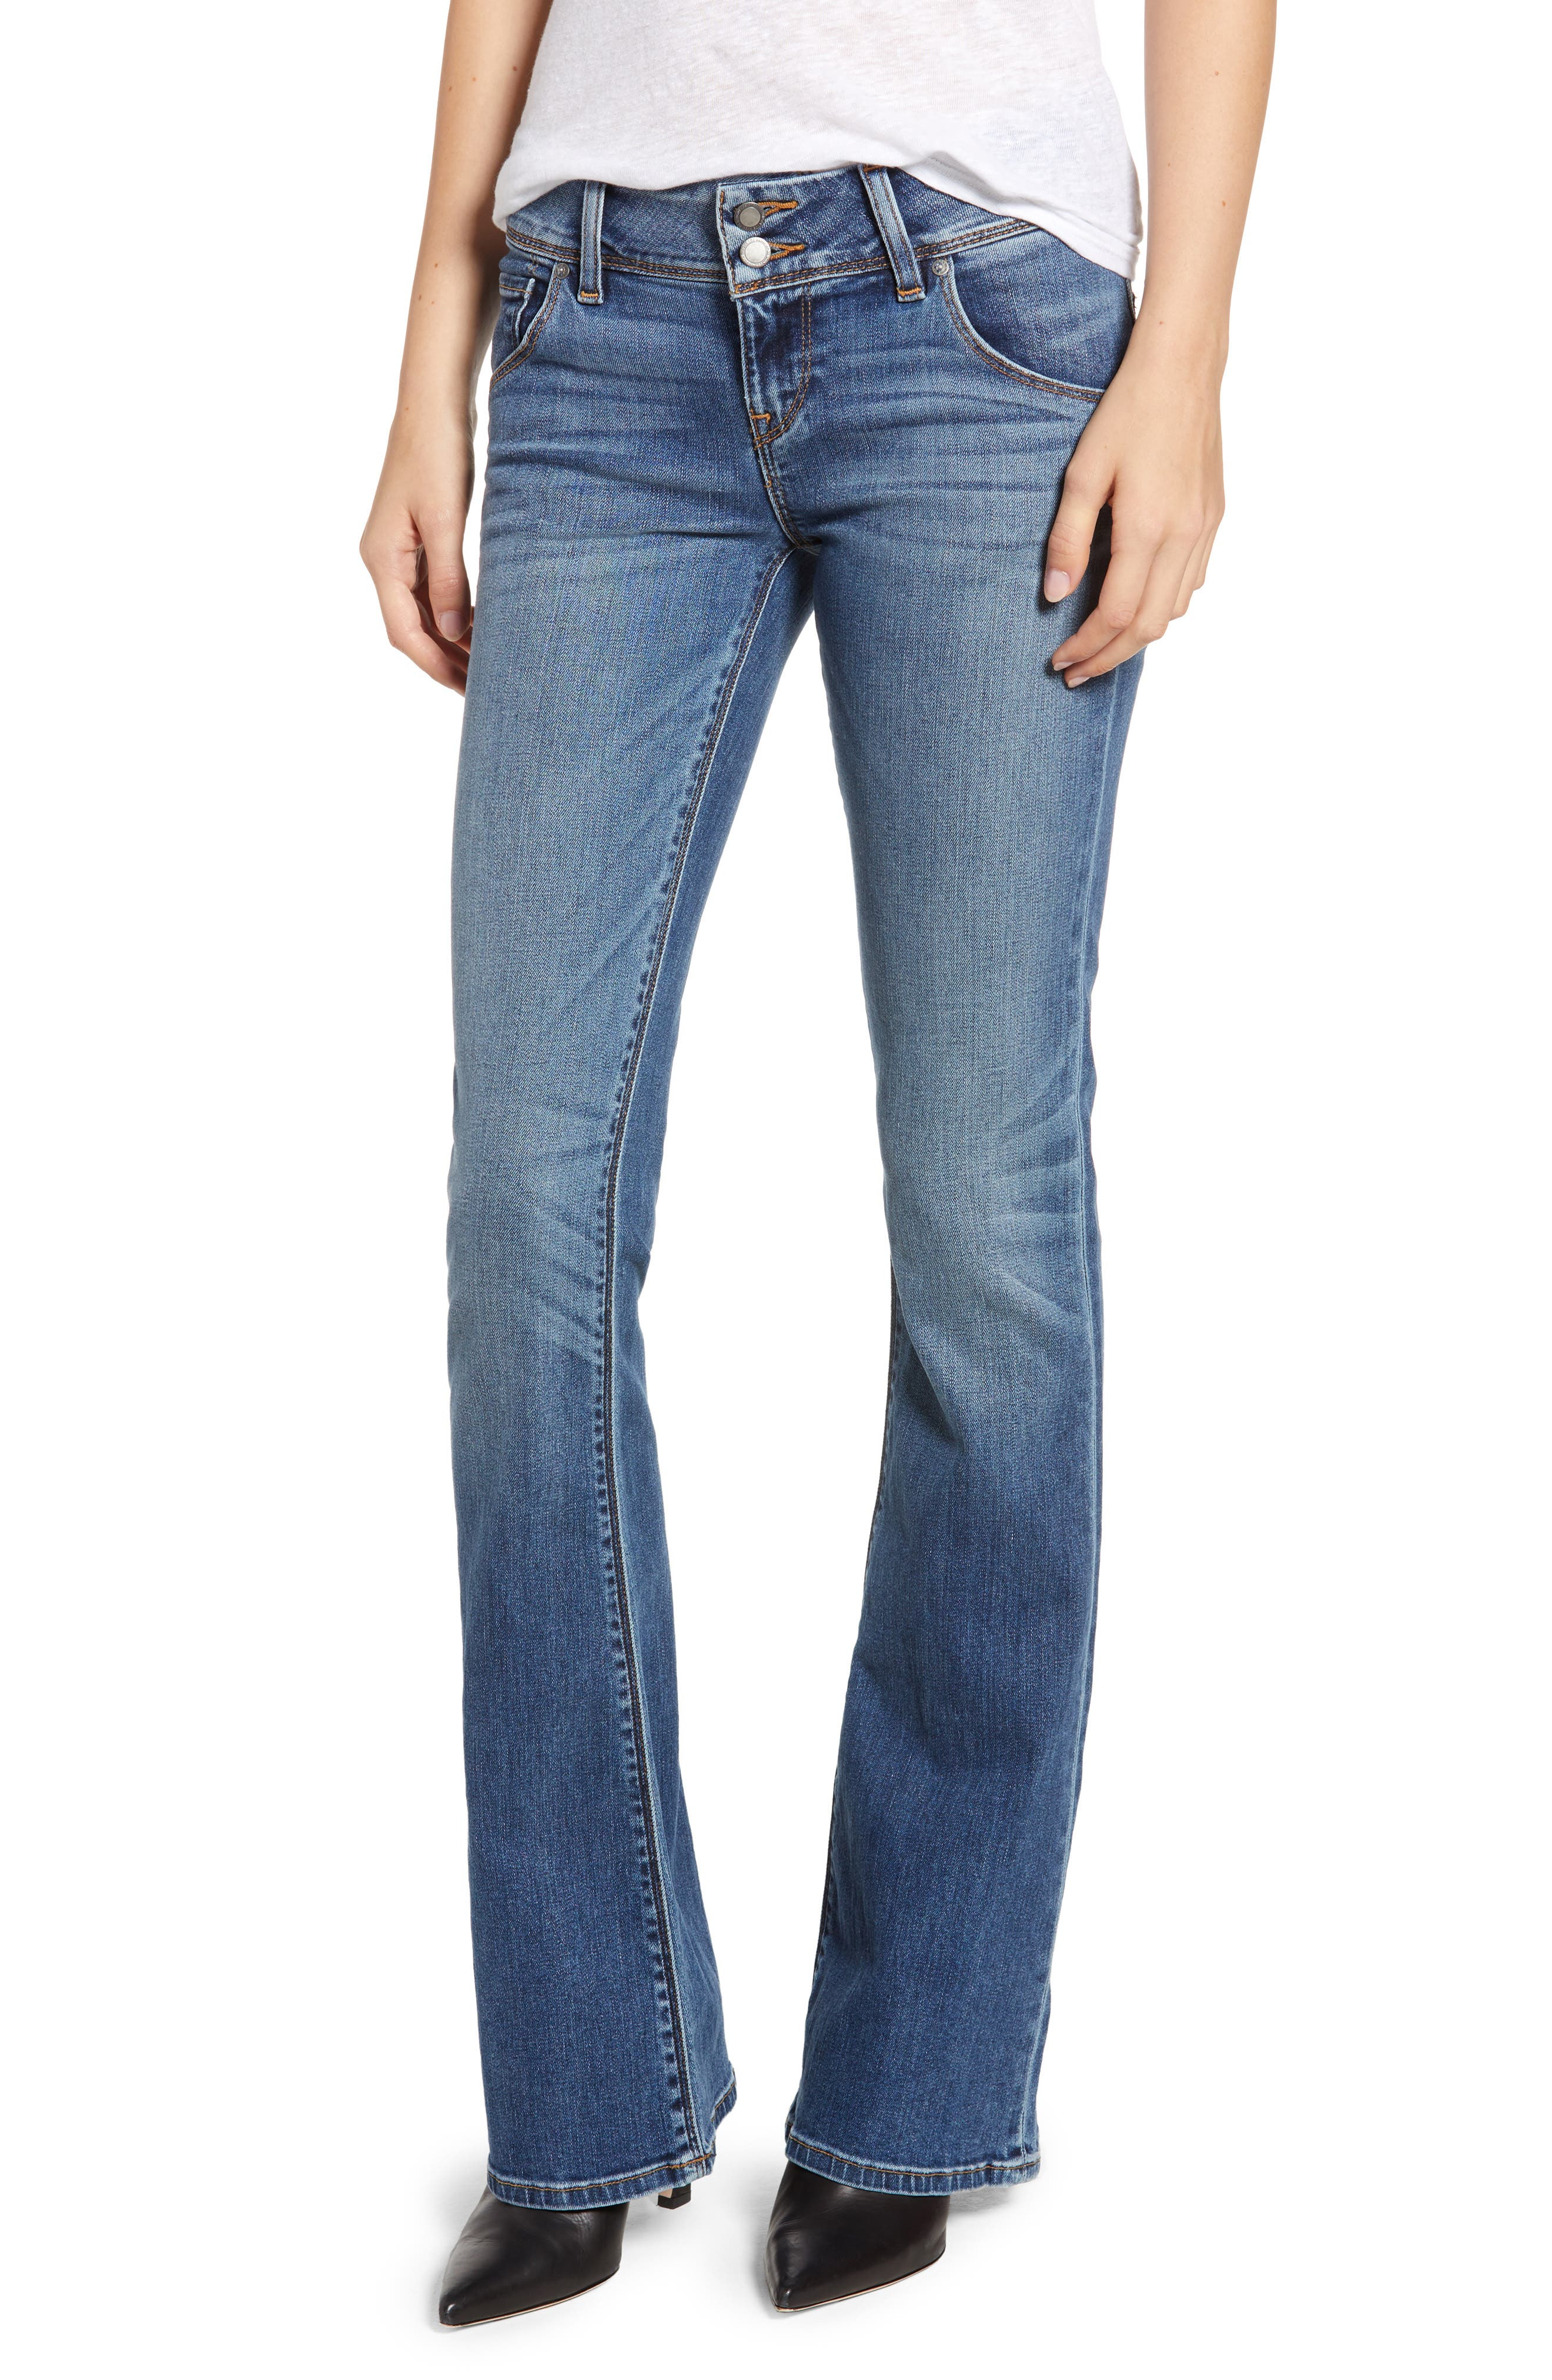 HUDSON JEANS, Signature Bootcut Jeans, Main thumbnail 1, color, OLYMPIC BLVD